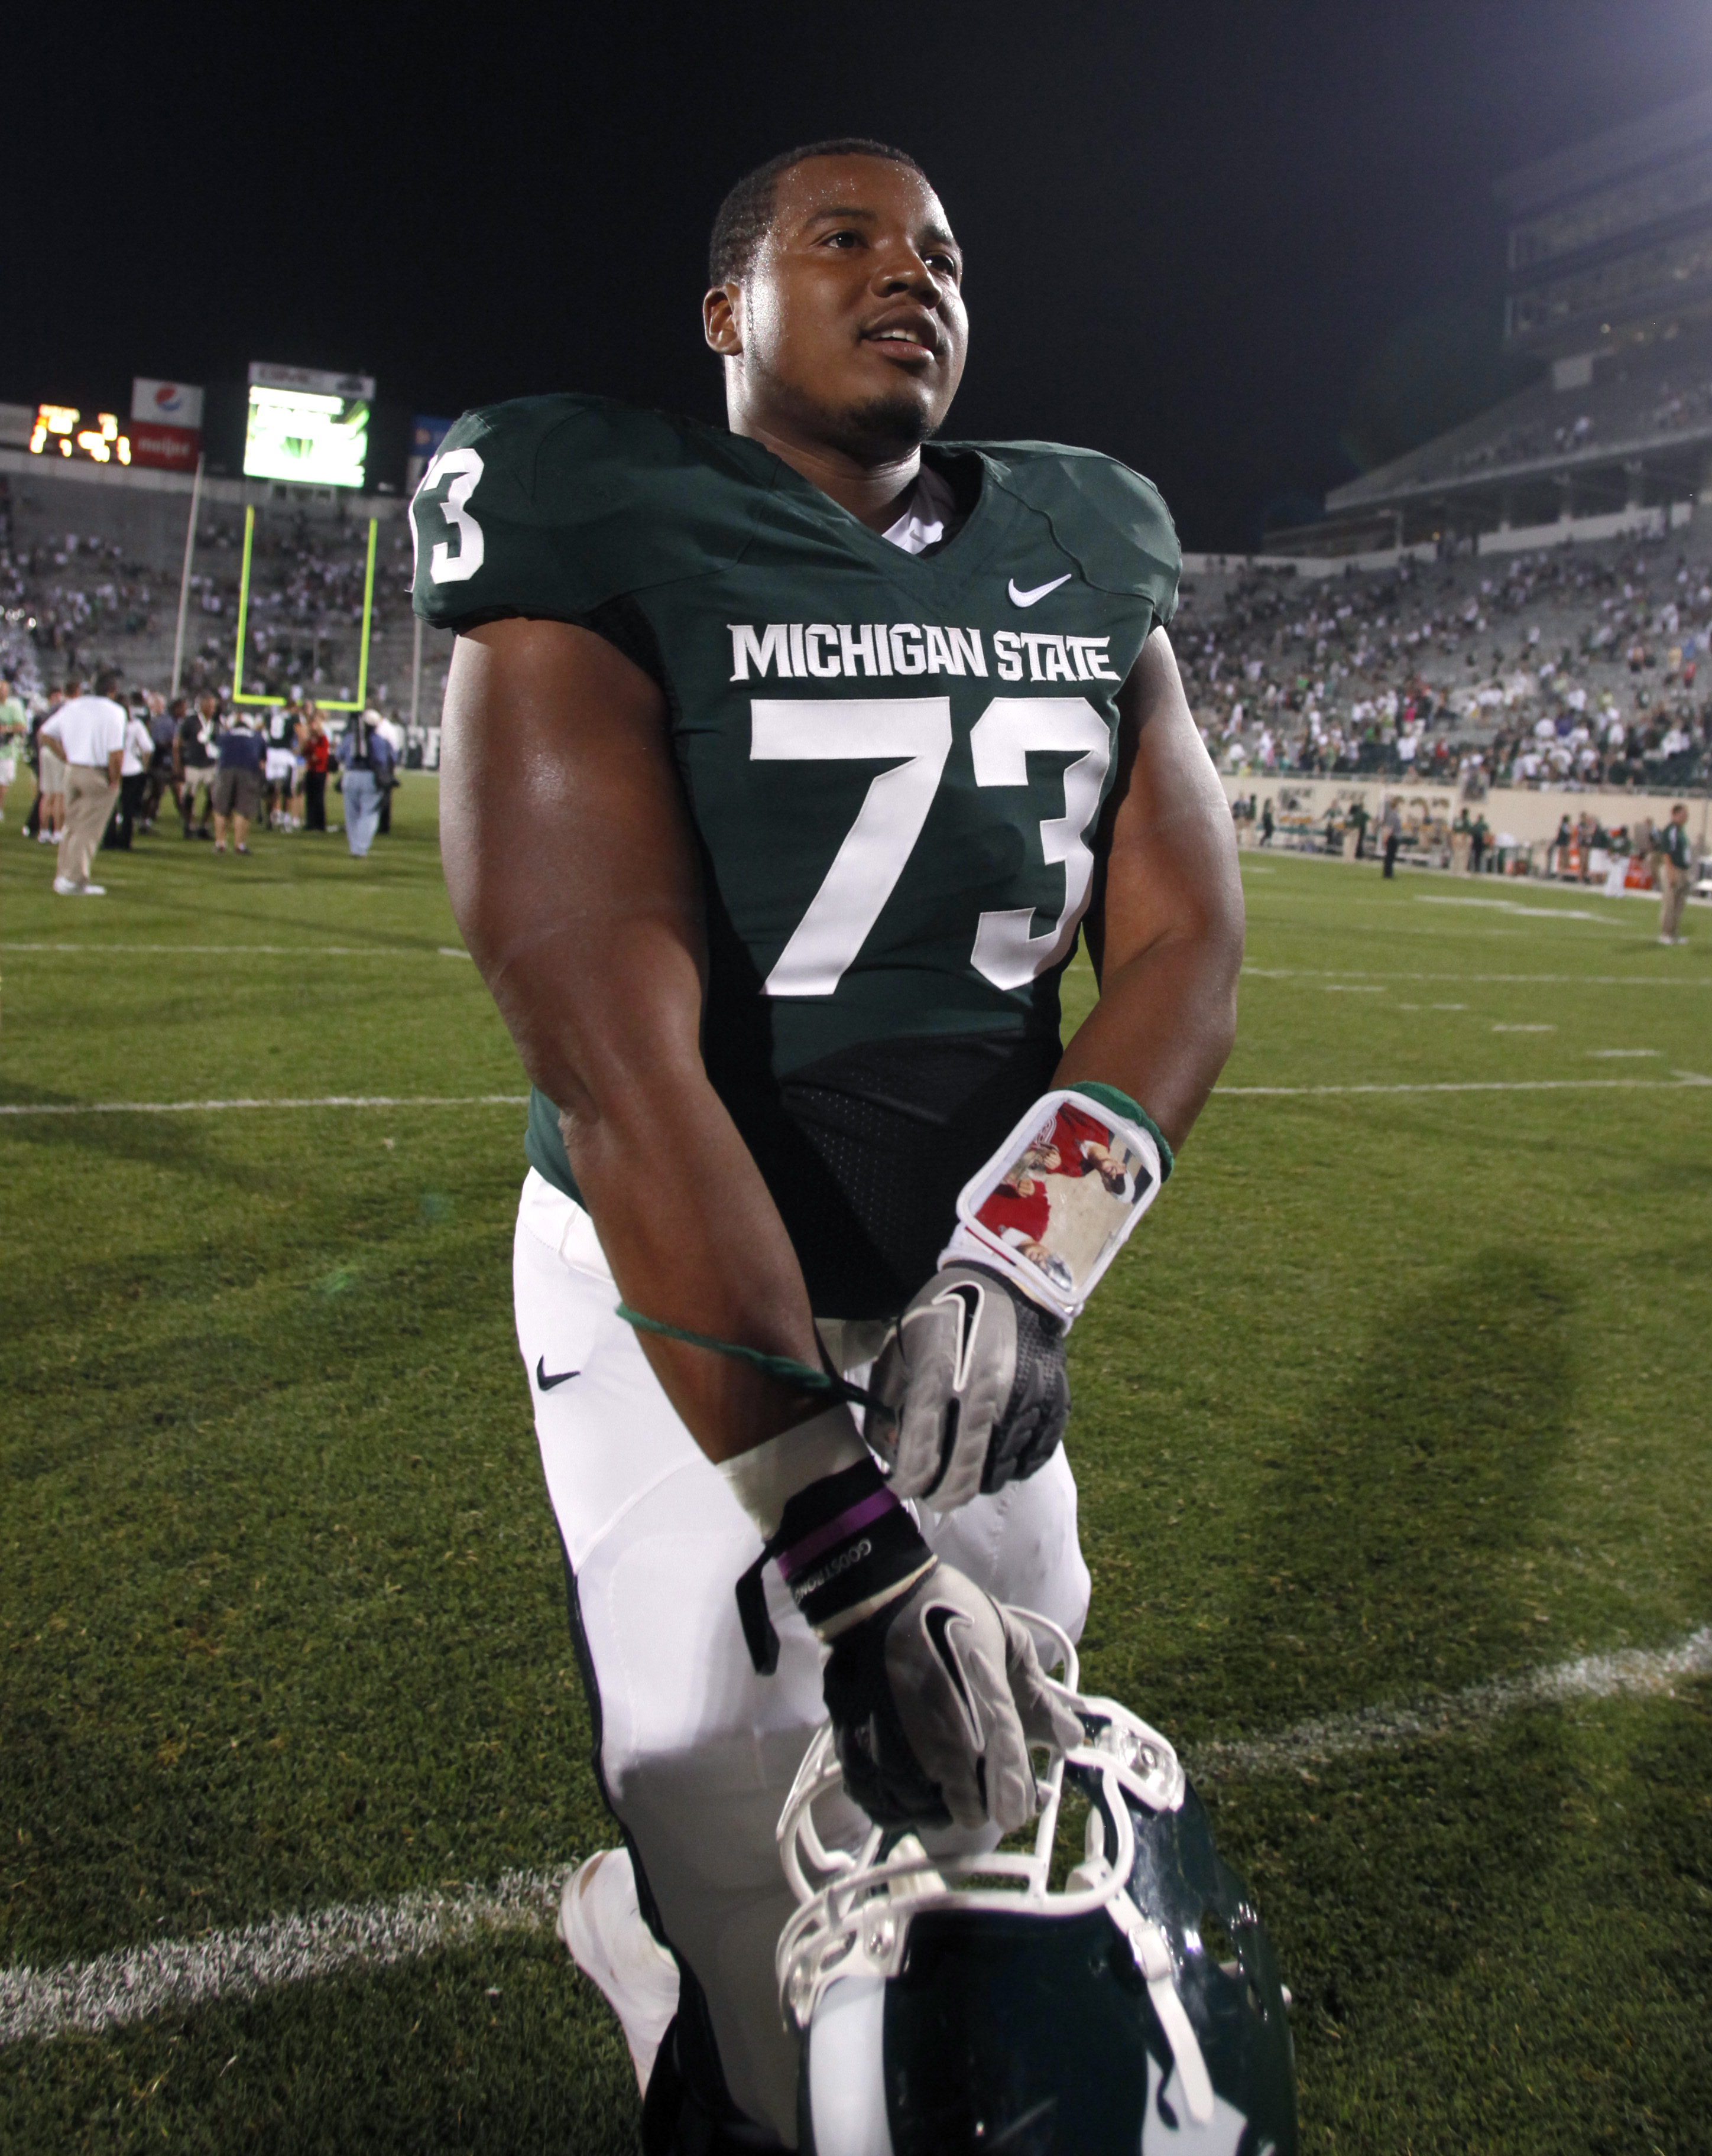 FILE - This Sept. 2, 2011, file photo shows Michigan State offensive lineman Arthur Ray Jr. leaves the field following a 28-6 win over Youngstown State in an NCAA college football game, in East Lansing, Mich. Offensive lineman Arthur Ray Jr. is among 26 p